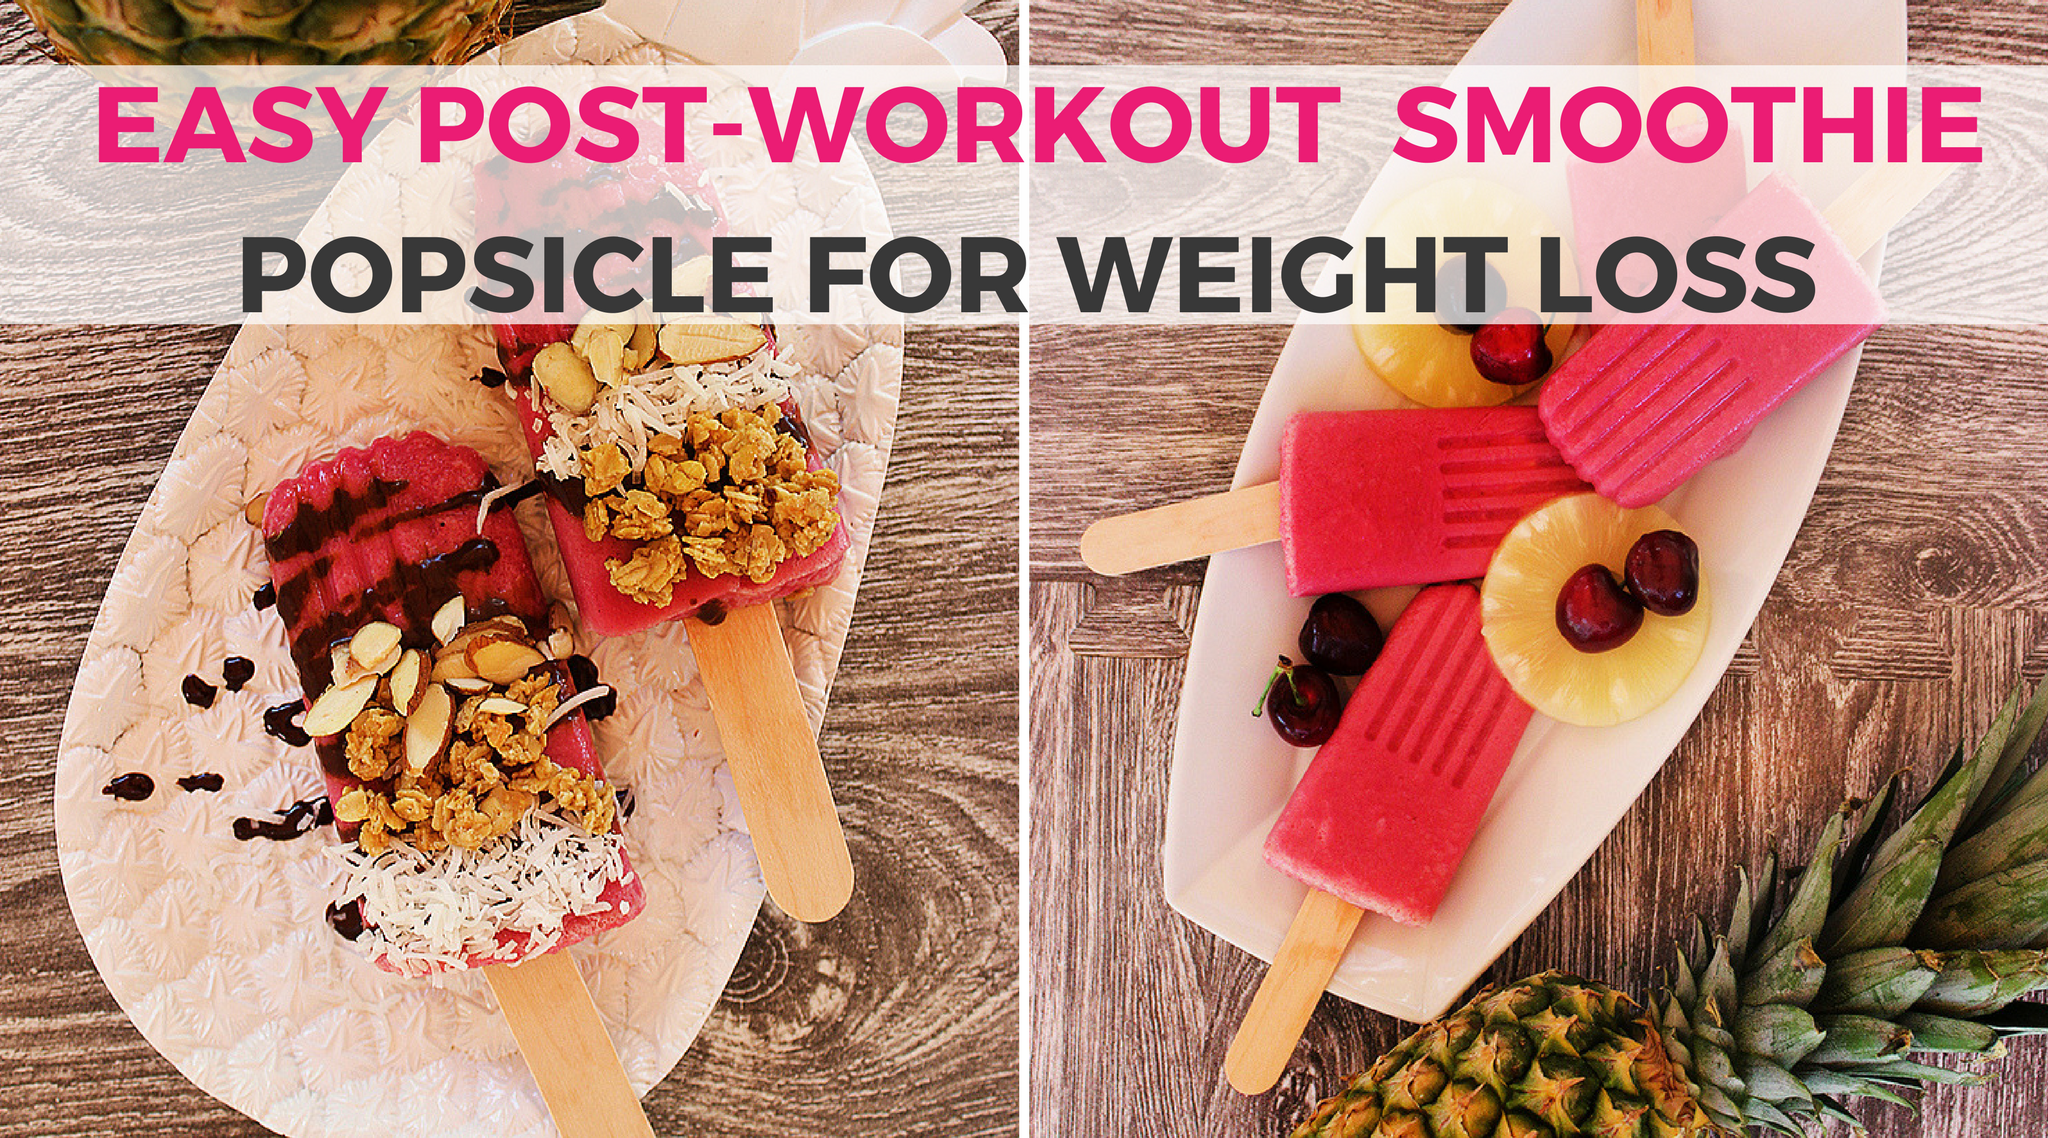 Easy Post-Workout Yogurt Smoothie Popsicle Recipes for Weight Loss: The hot, sunny weather has finally arrived & what better way to cool down post-workout than with a delicious popsicle filled with healthy ingredients to help you in your muscle recovery.